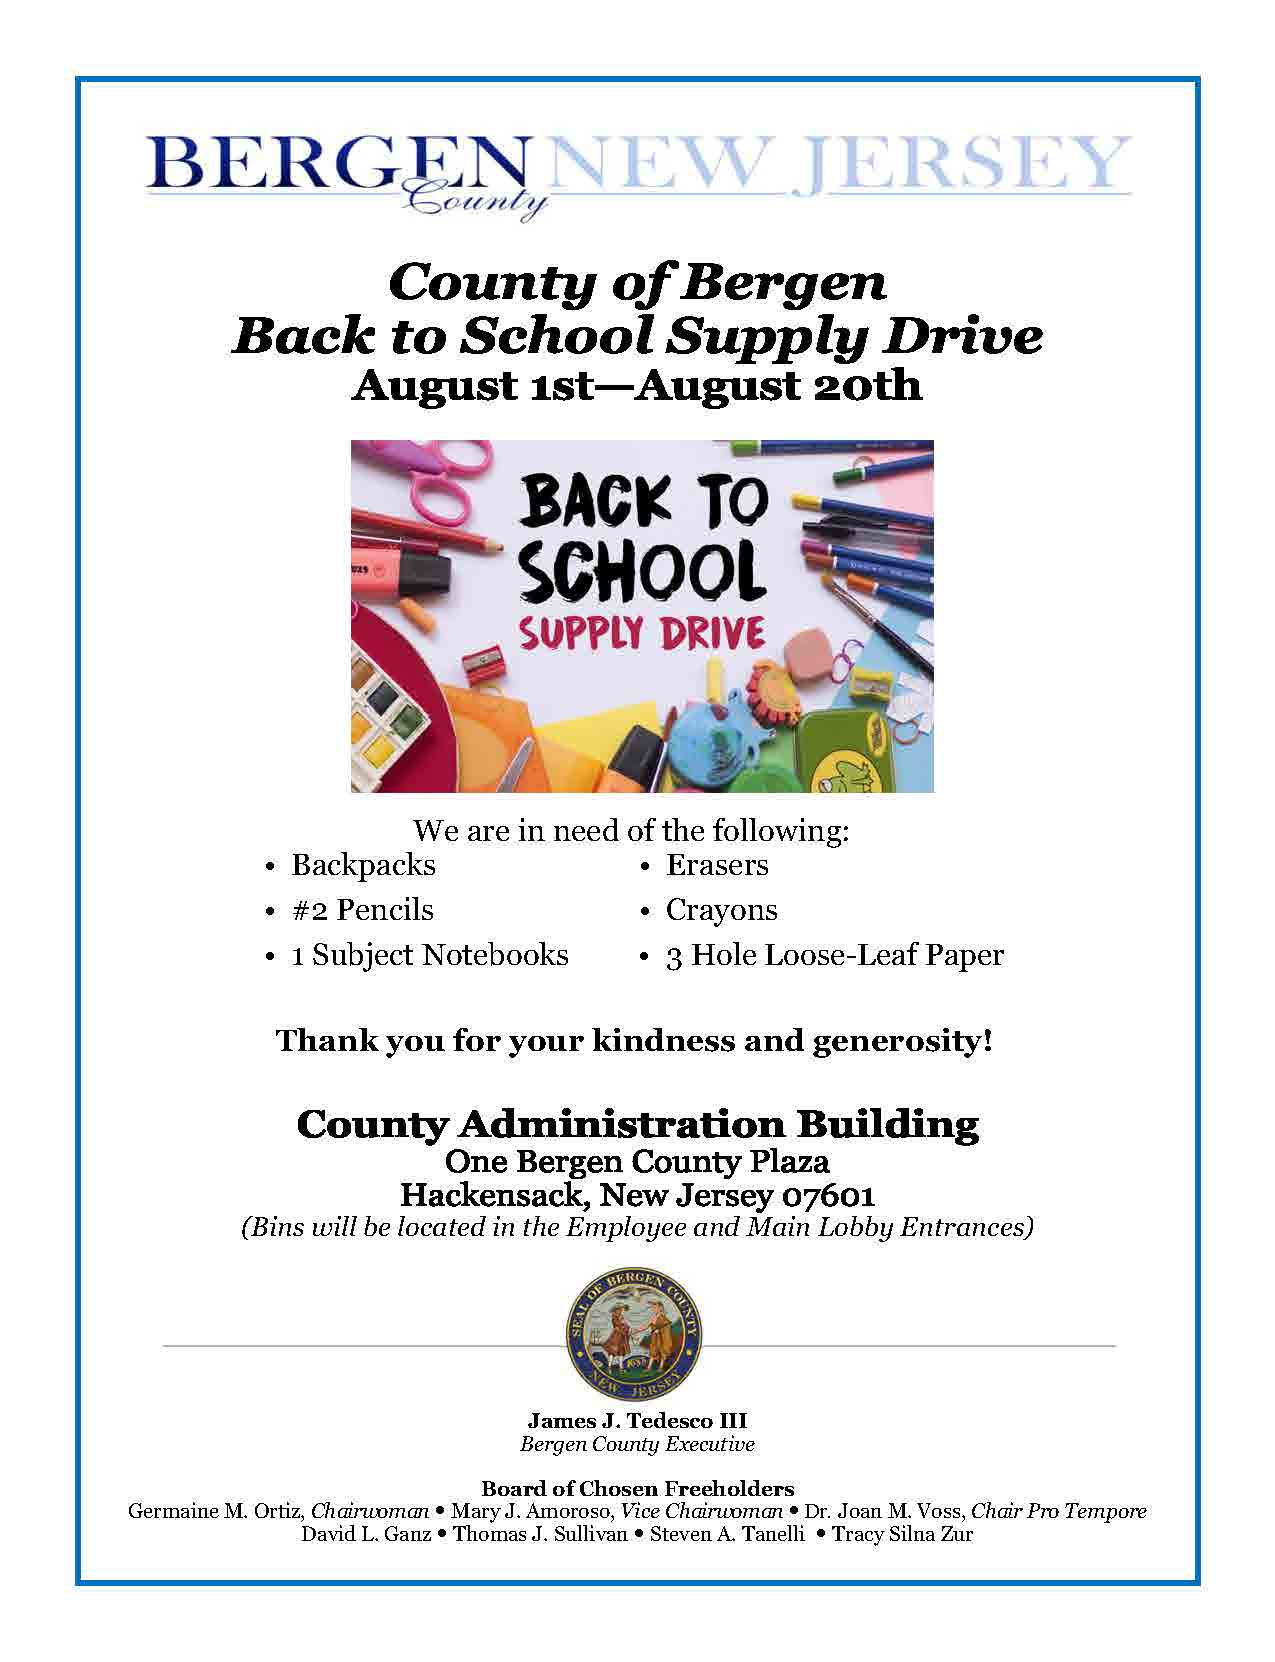 Back to School Supply Drive Flyer